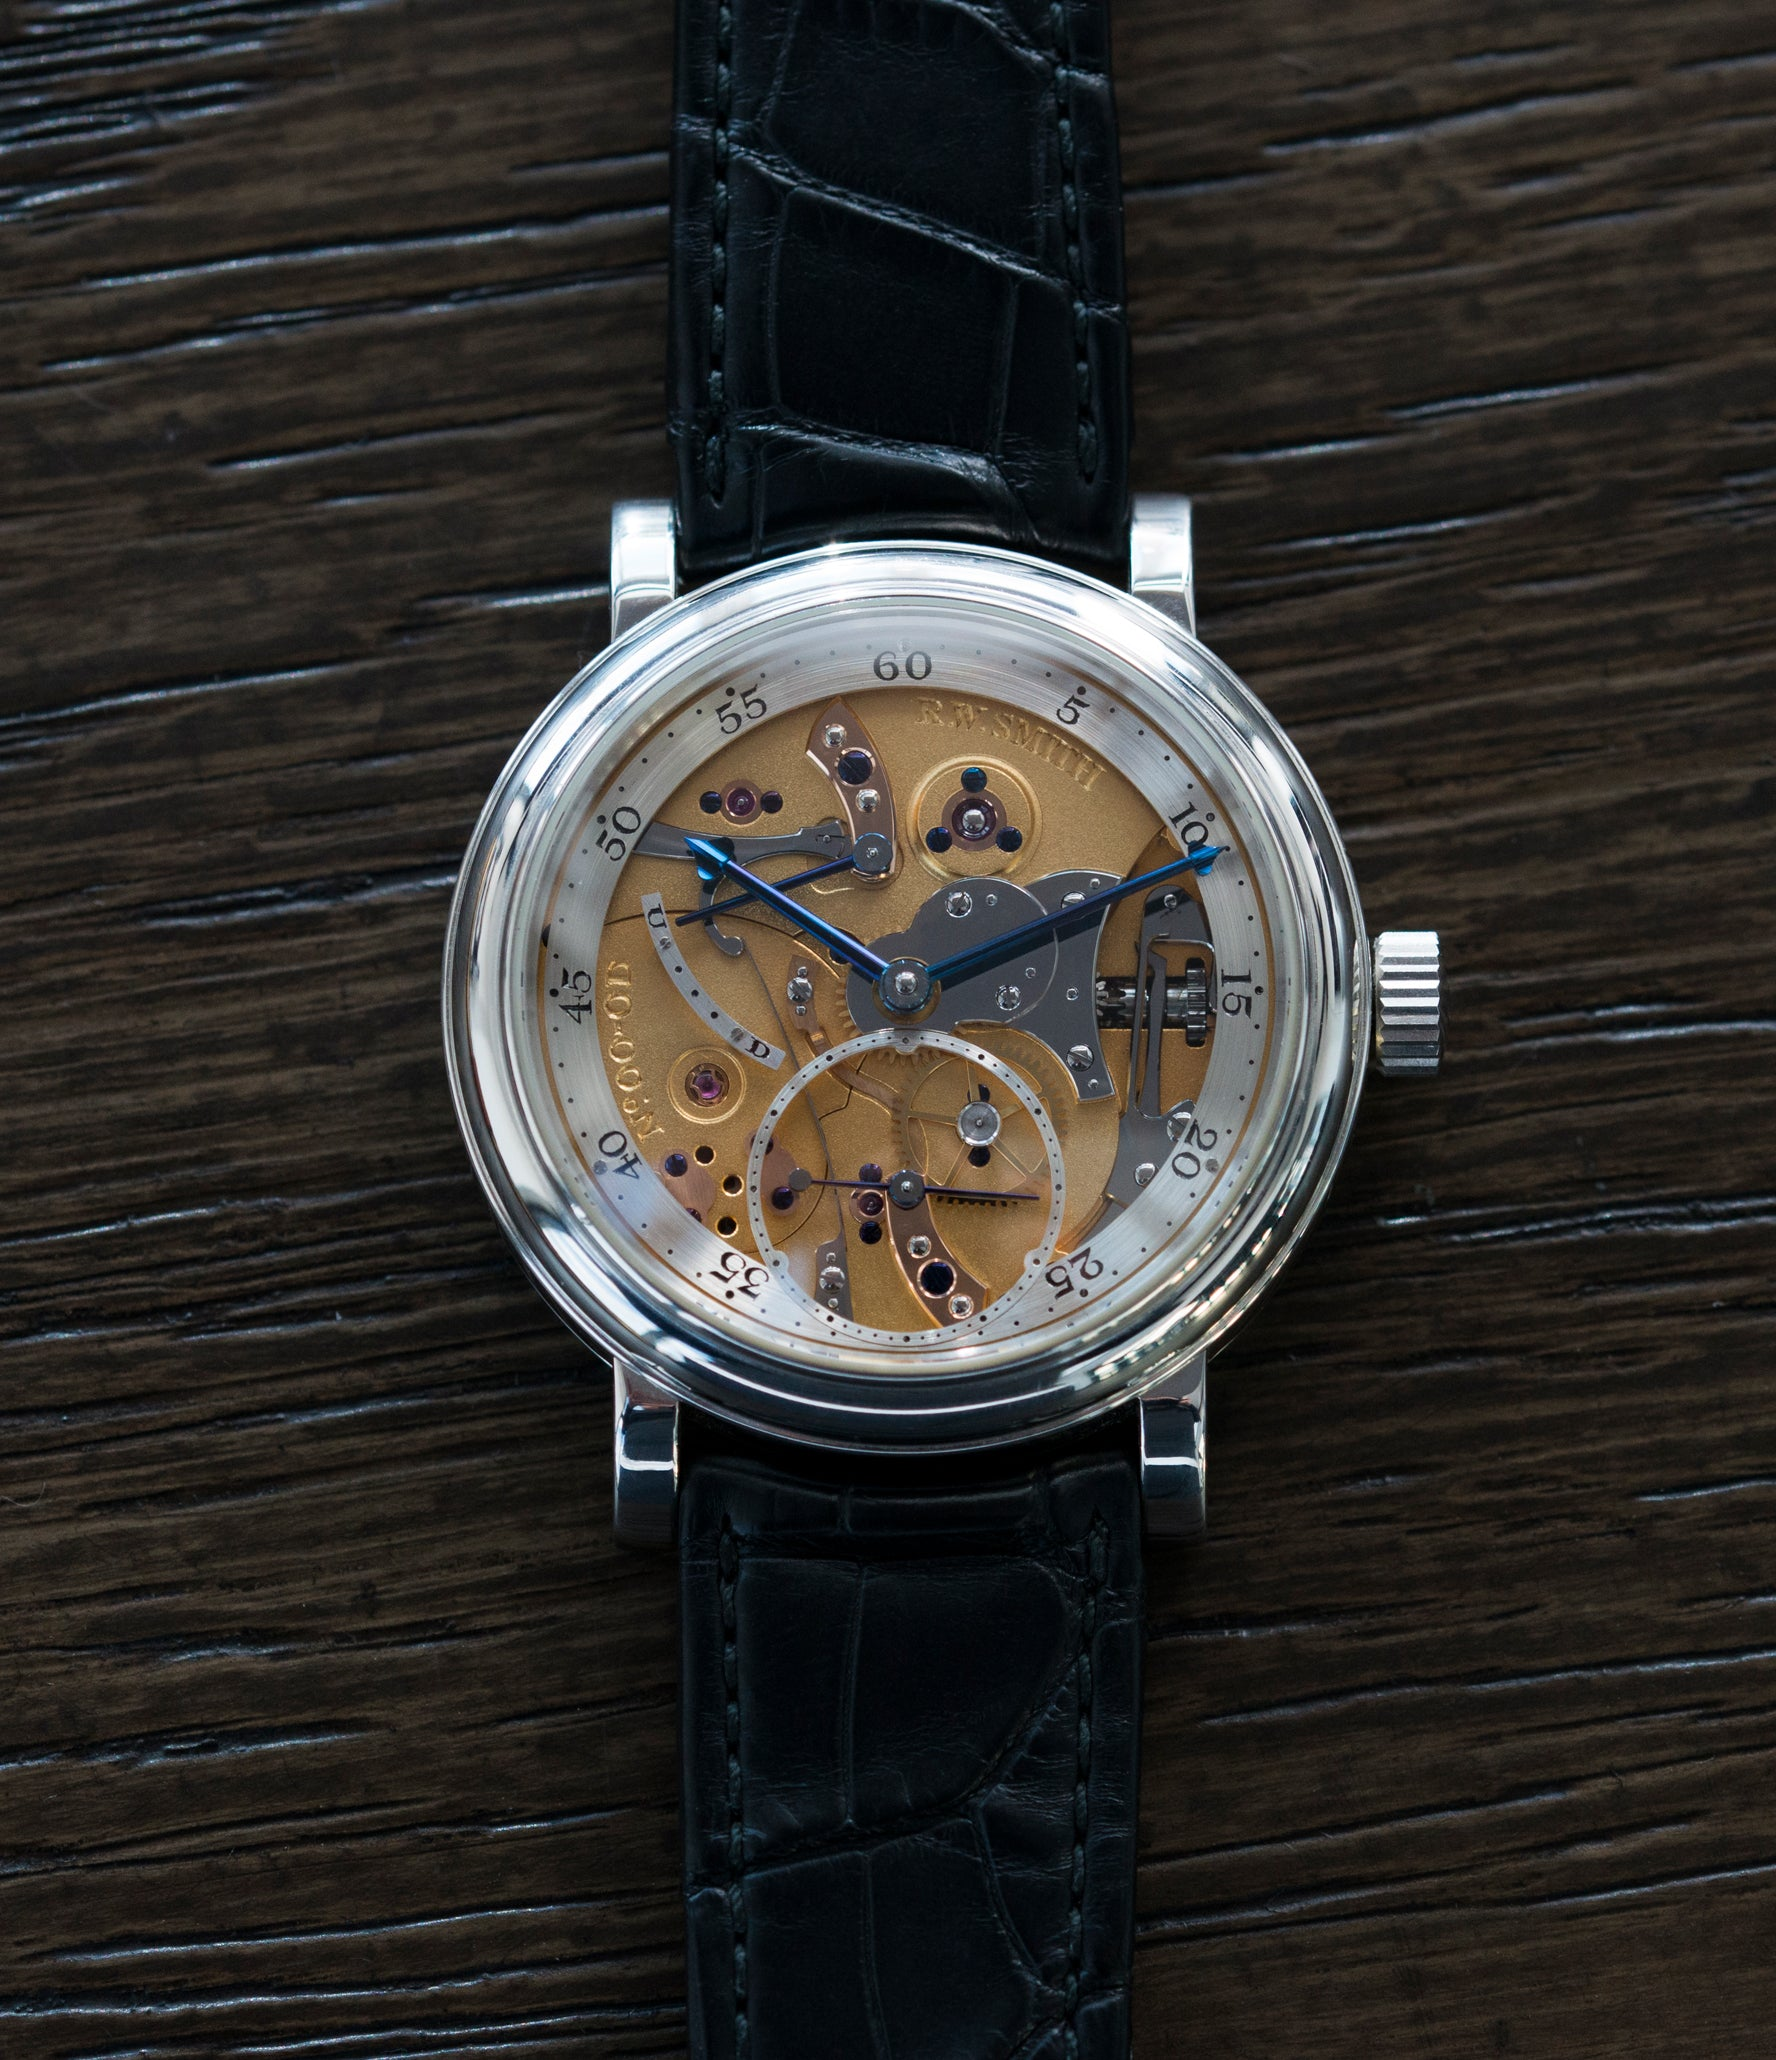 rare hand-made Series 2 Roger W. Smith Open Dial rare dress platinum watch for sale online at A Collected Man London UK approved seller of independent watchmakers